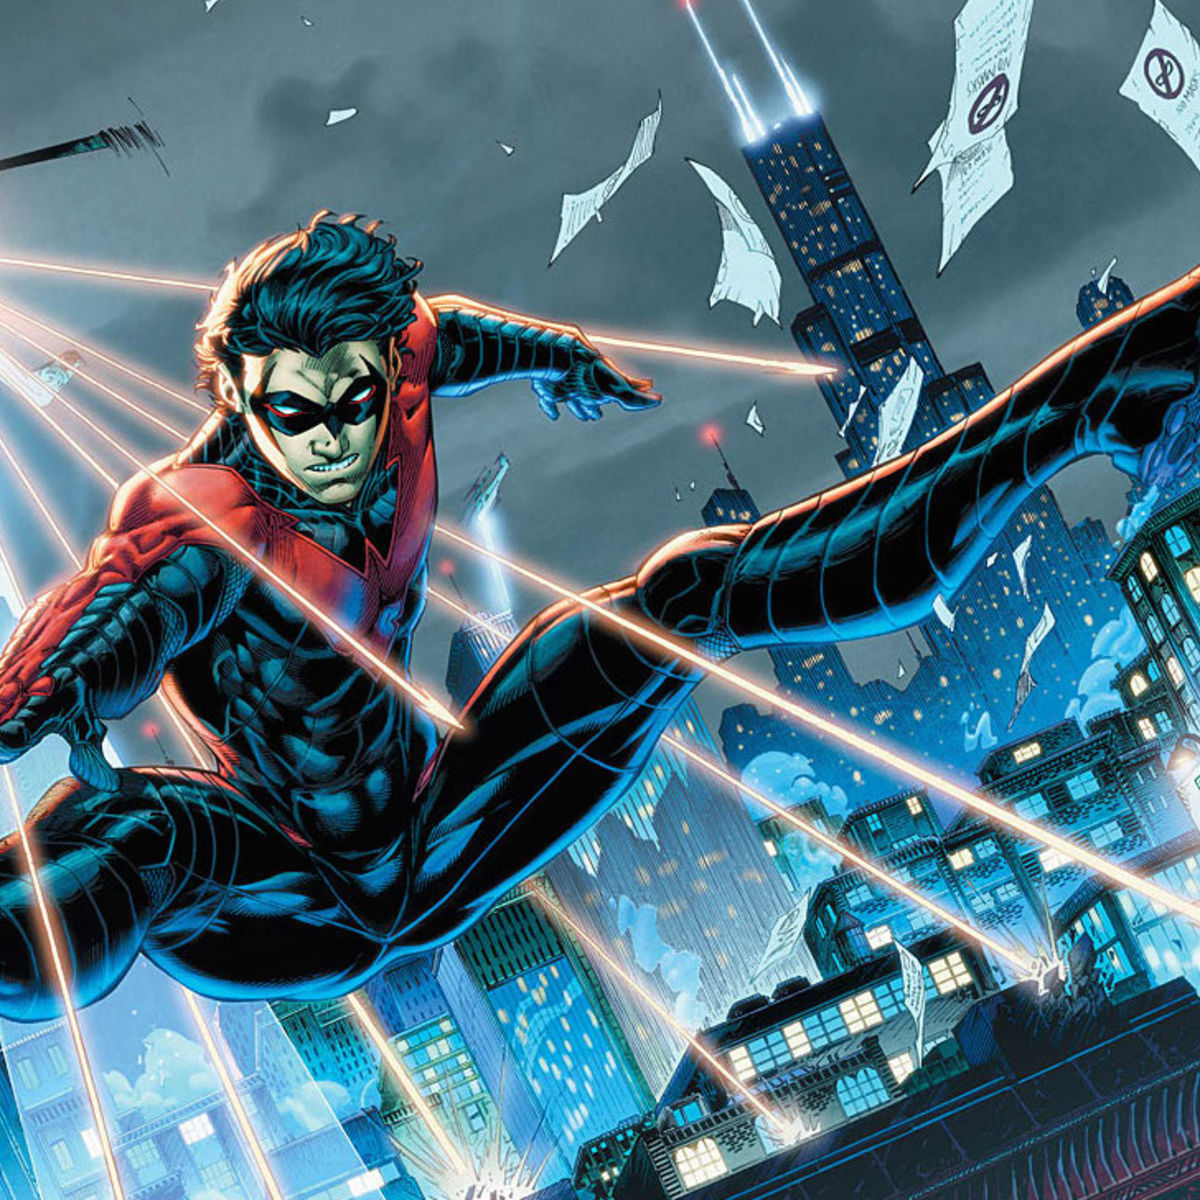 3061545-nightwing+gunfire.jpg